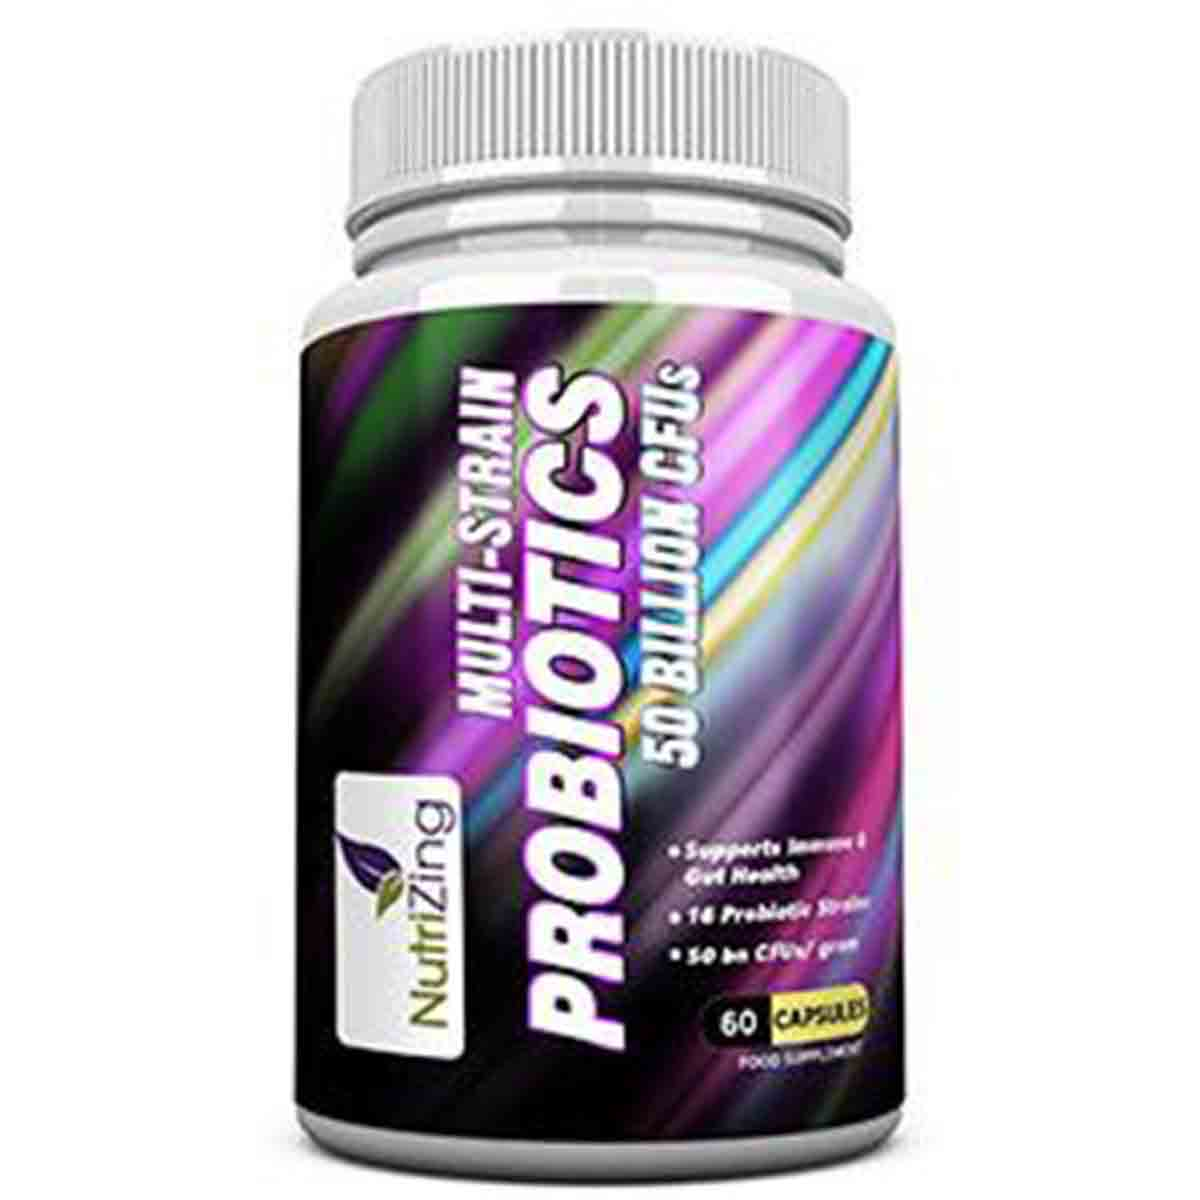 NutriZing Multi-Strain Probiotic